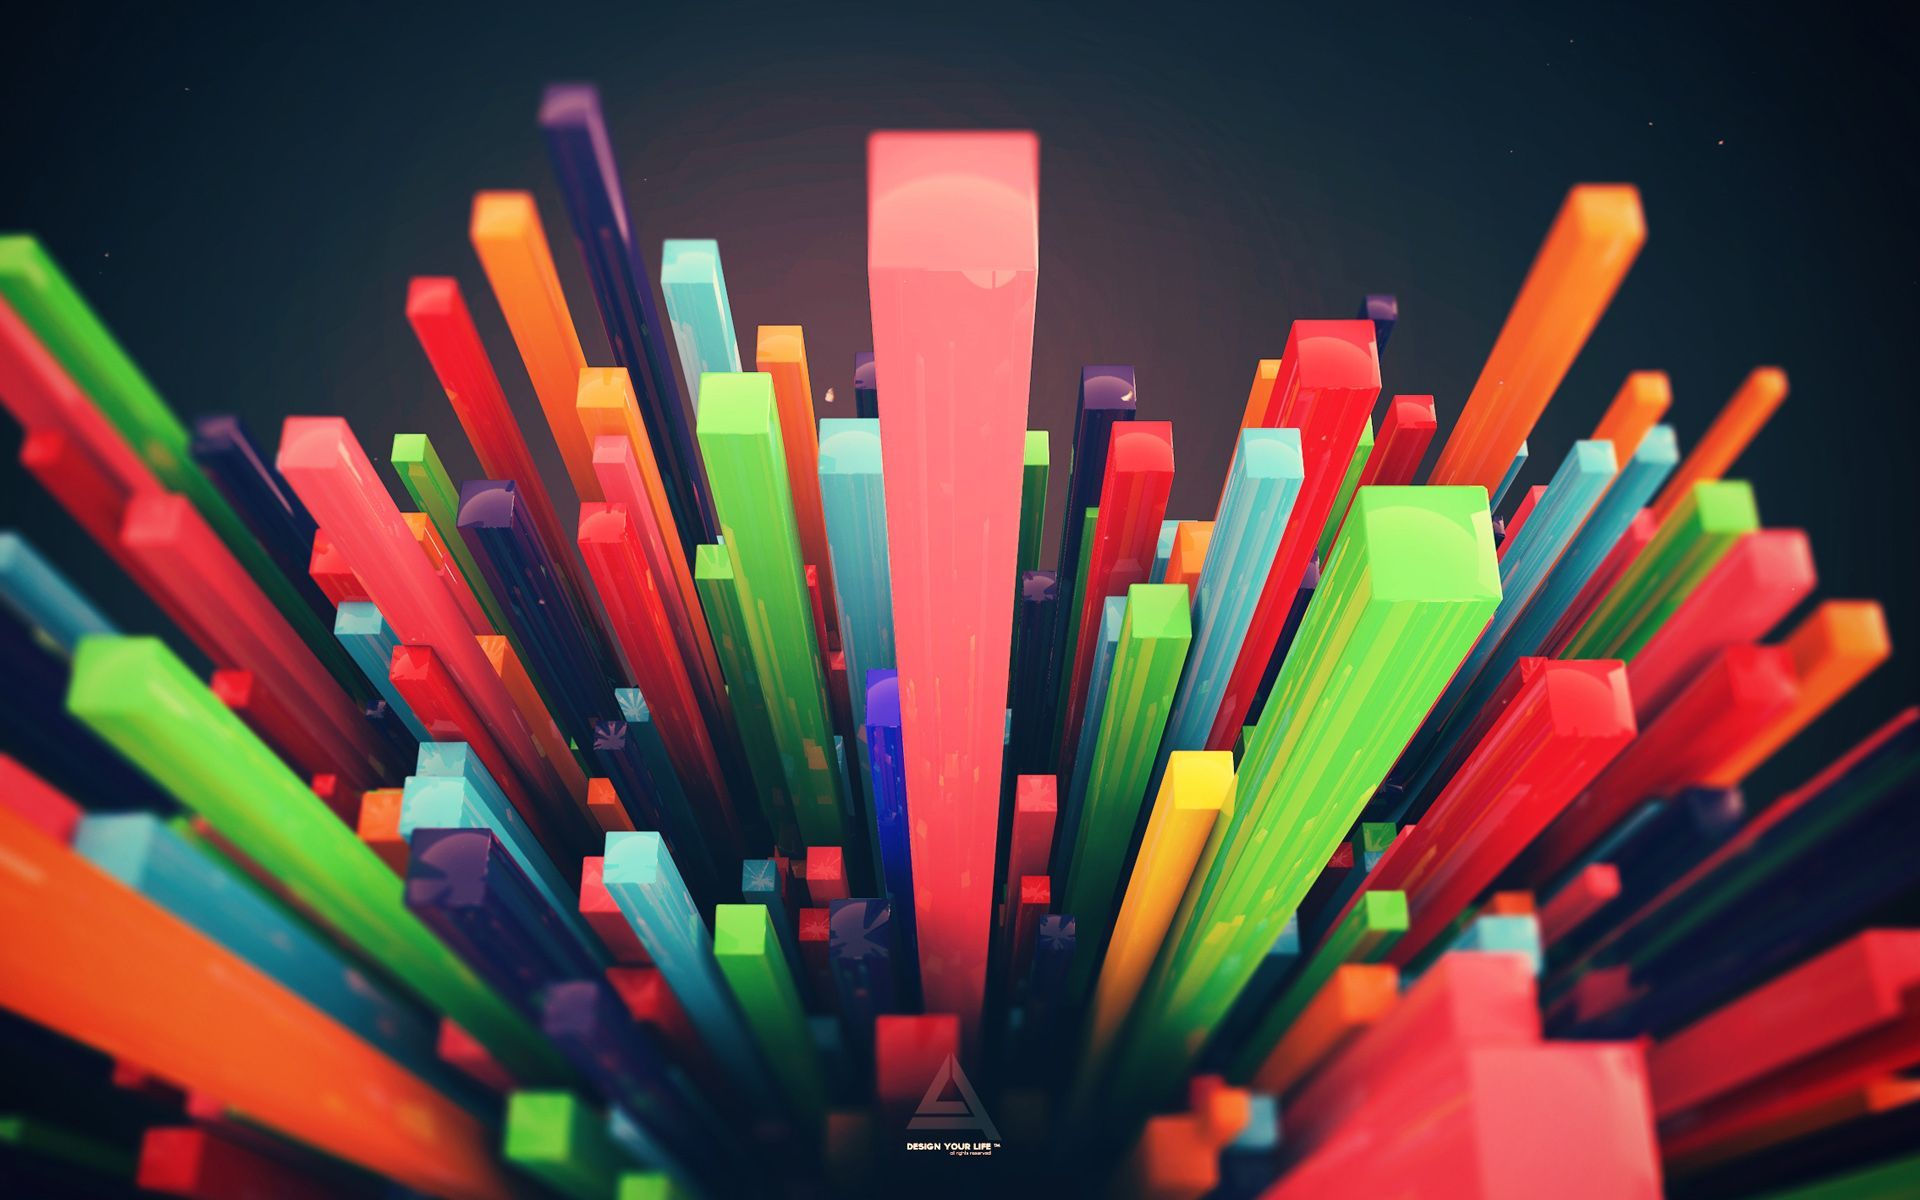 Pics photos 3d colorful abstract background design - Colorful Wallpaper Colorful 3d Bars